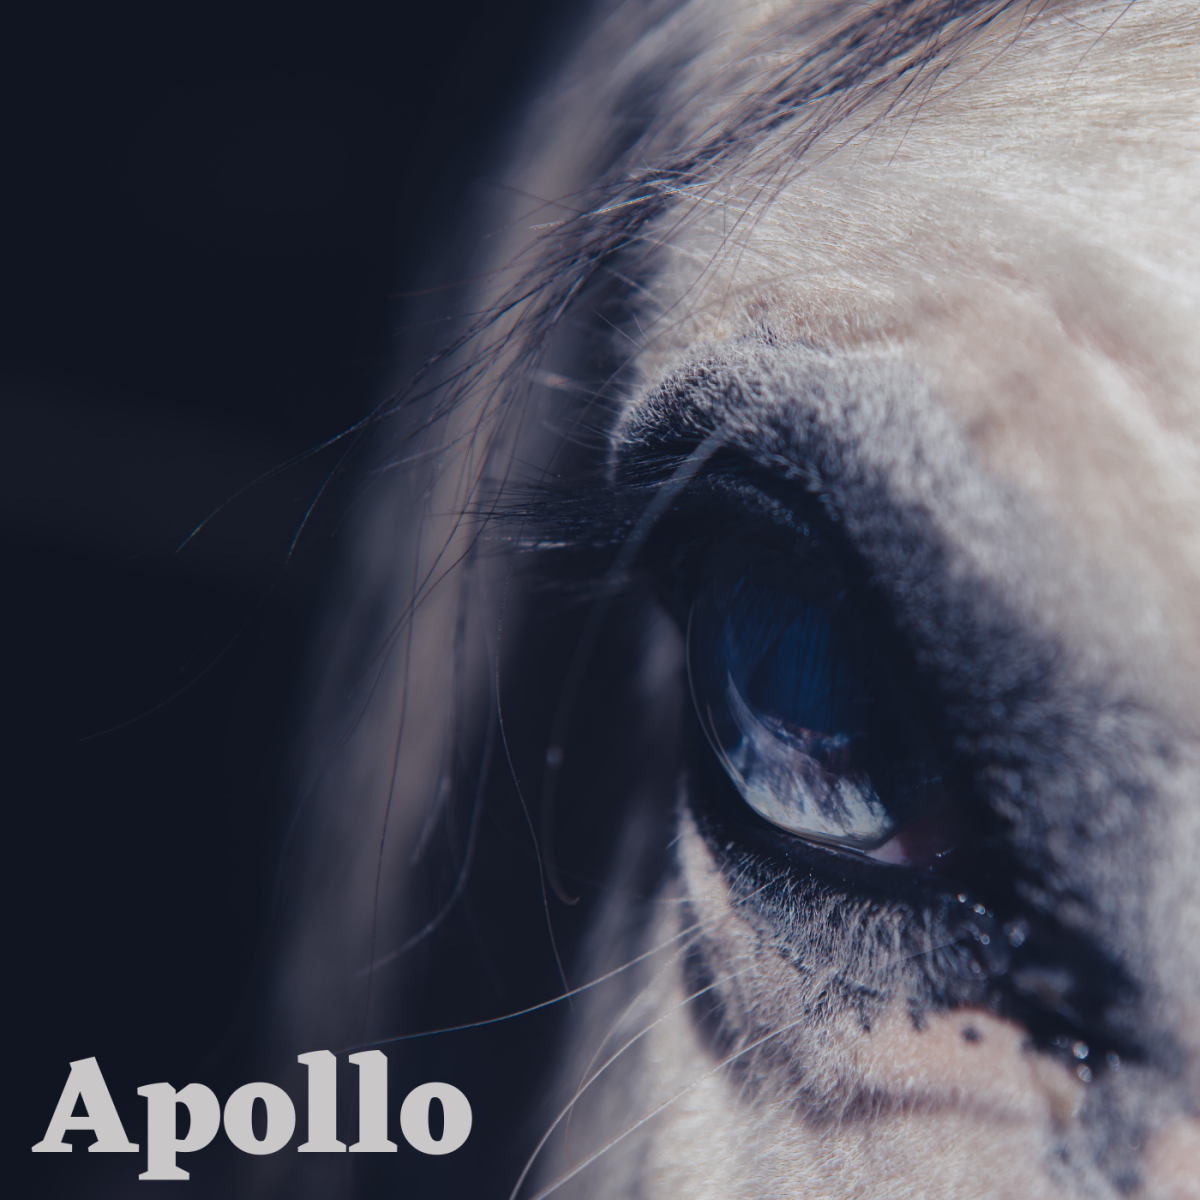 Apollo would make a great name for silver horse with a kind temperment.